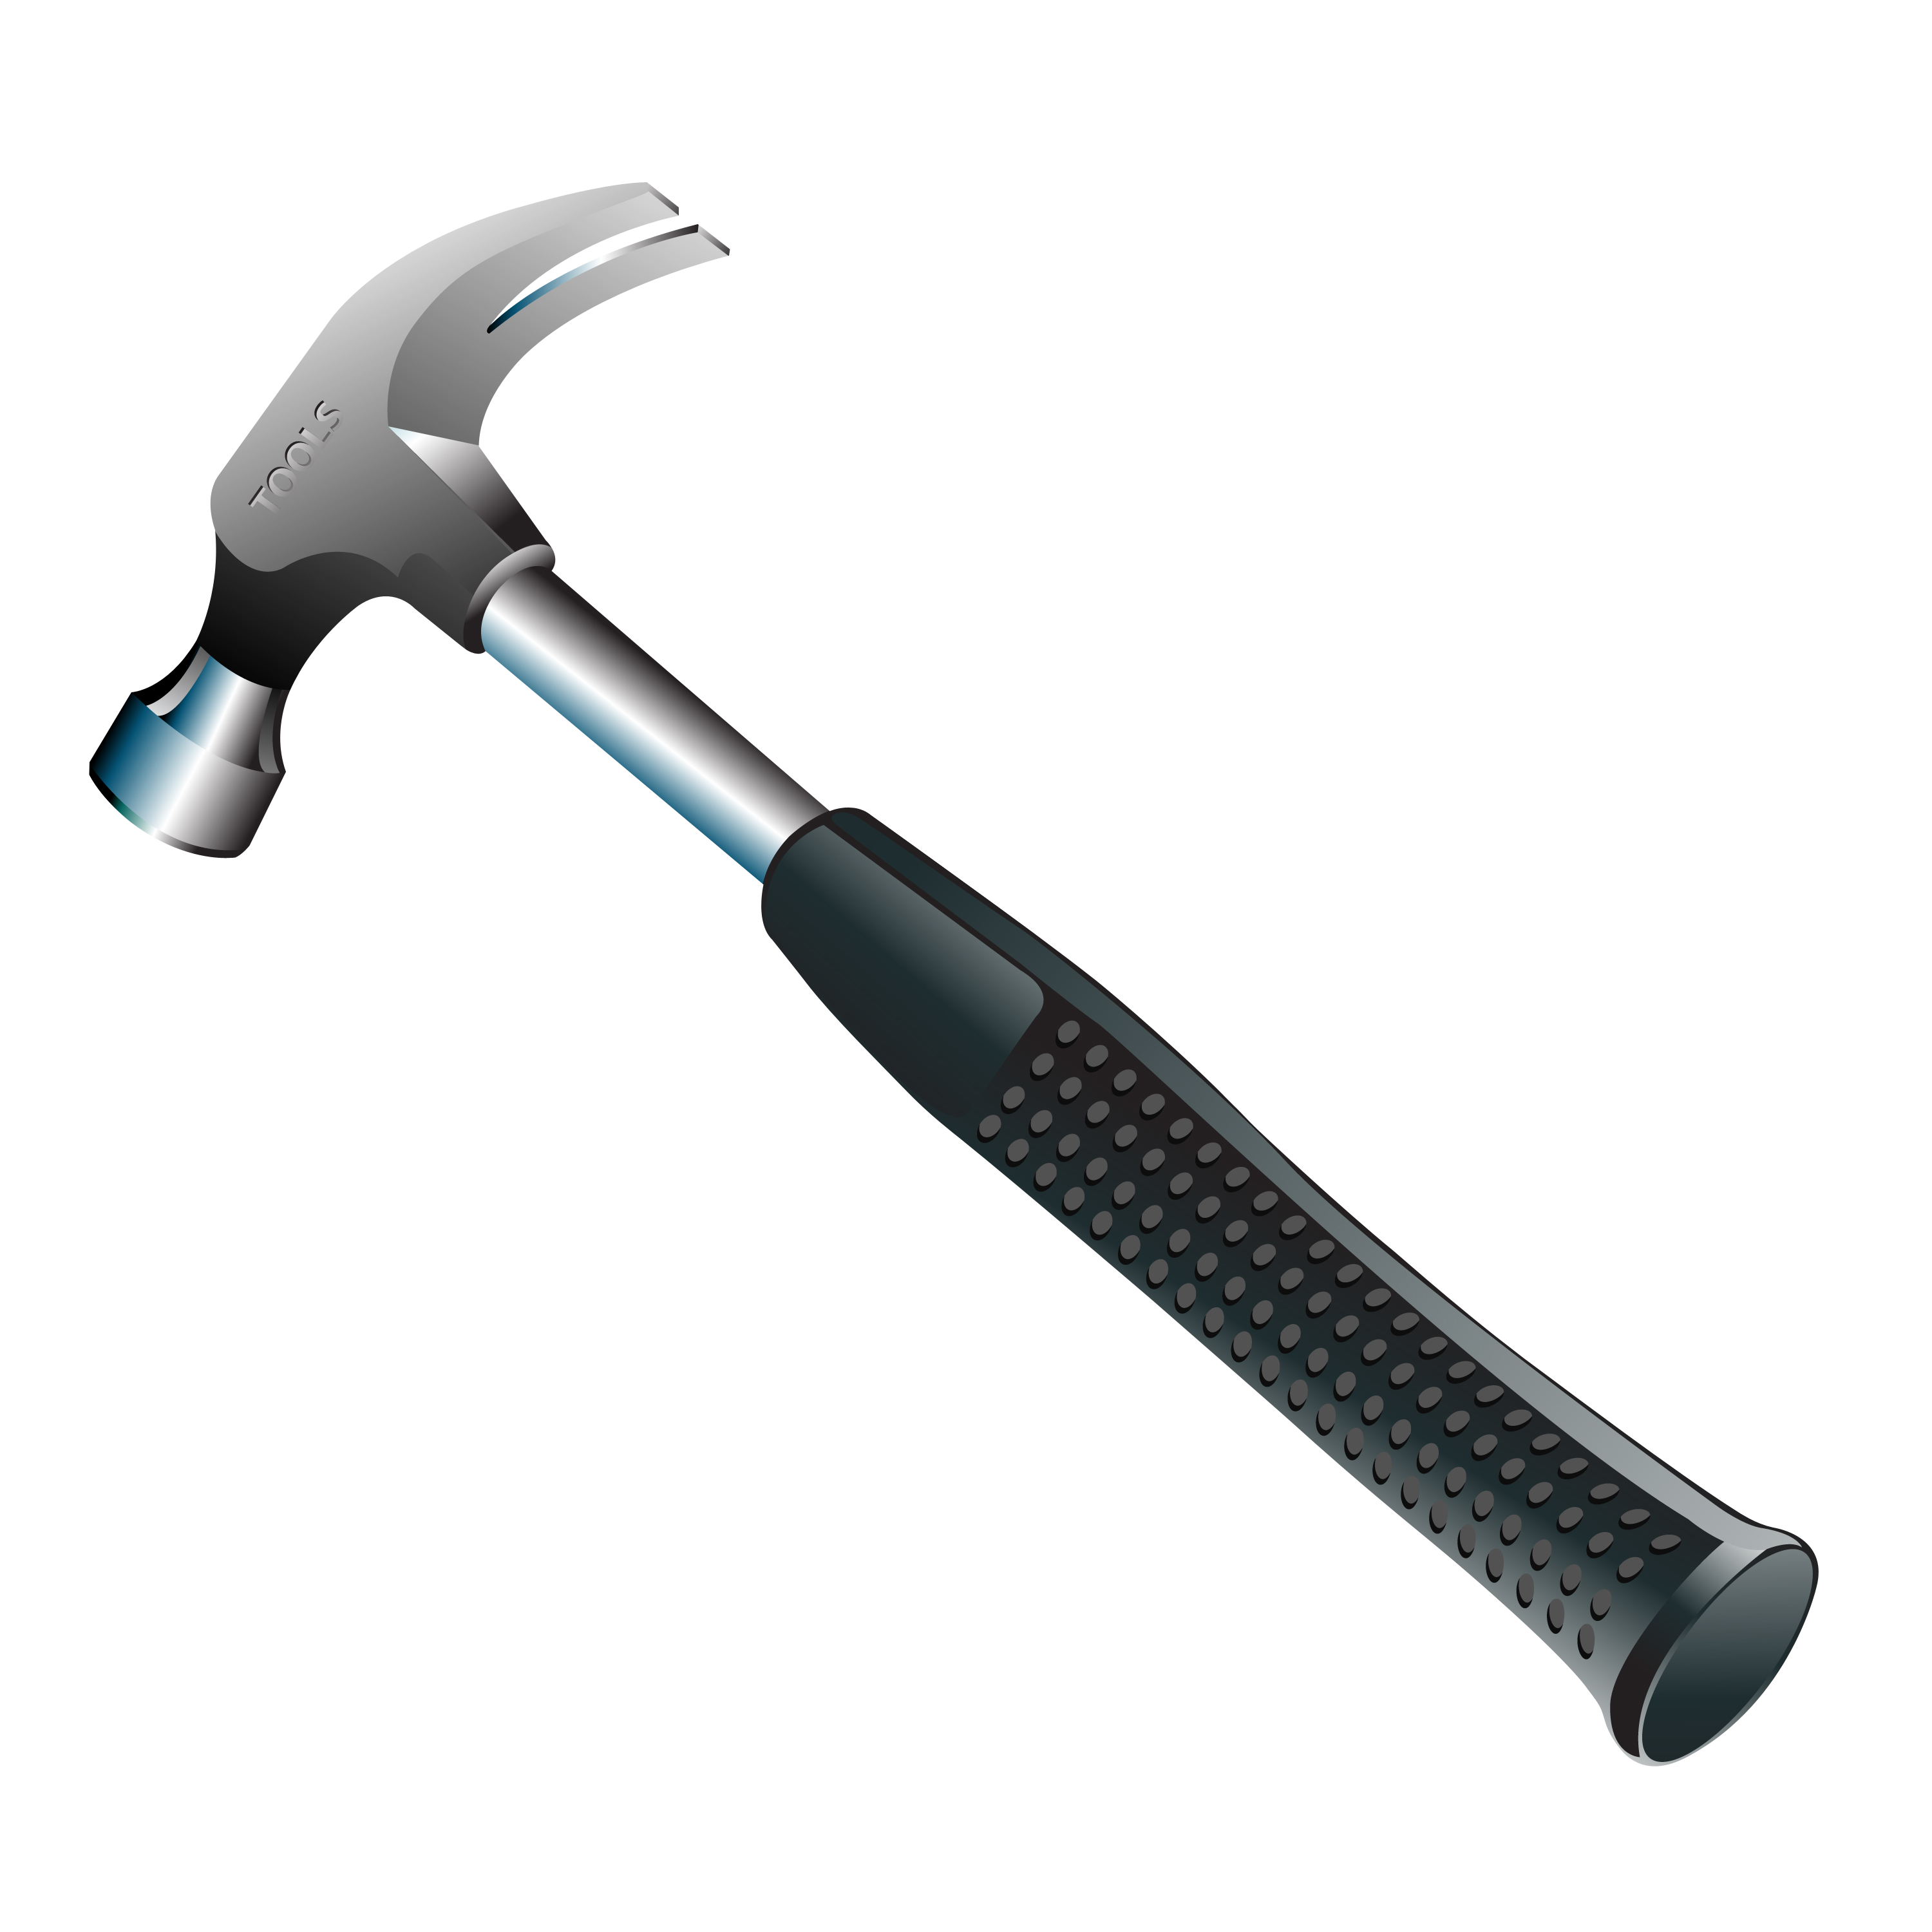 Hammer HD PNG